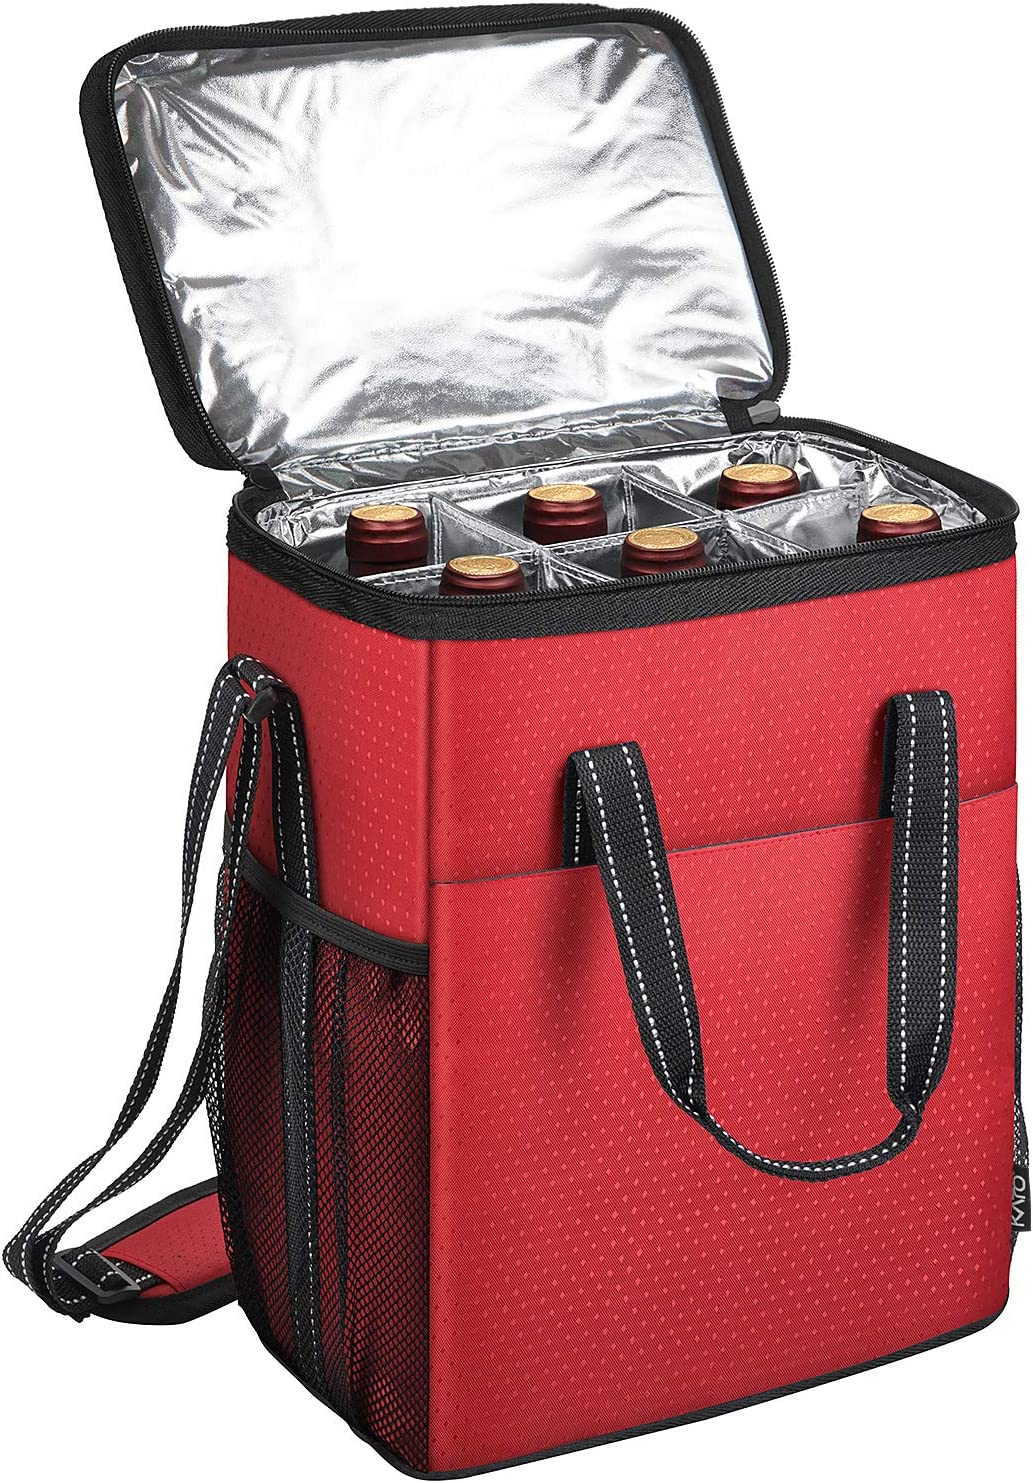 6 Bottle Wine Carrier - Insulated & Padded Wine Carrying Cooler Tote Bag for Travel, Camping and Picnic, Ideal Wine Lover Gift, Star Dot Pattern, Red